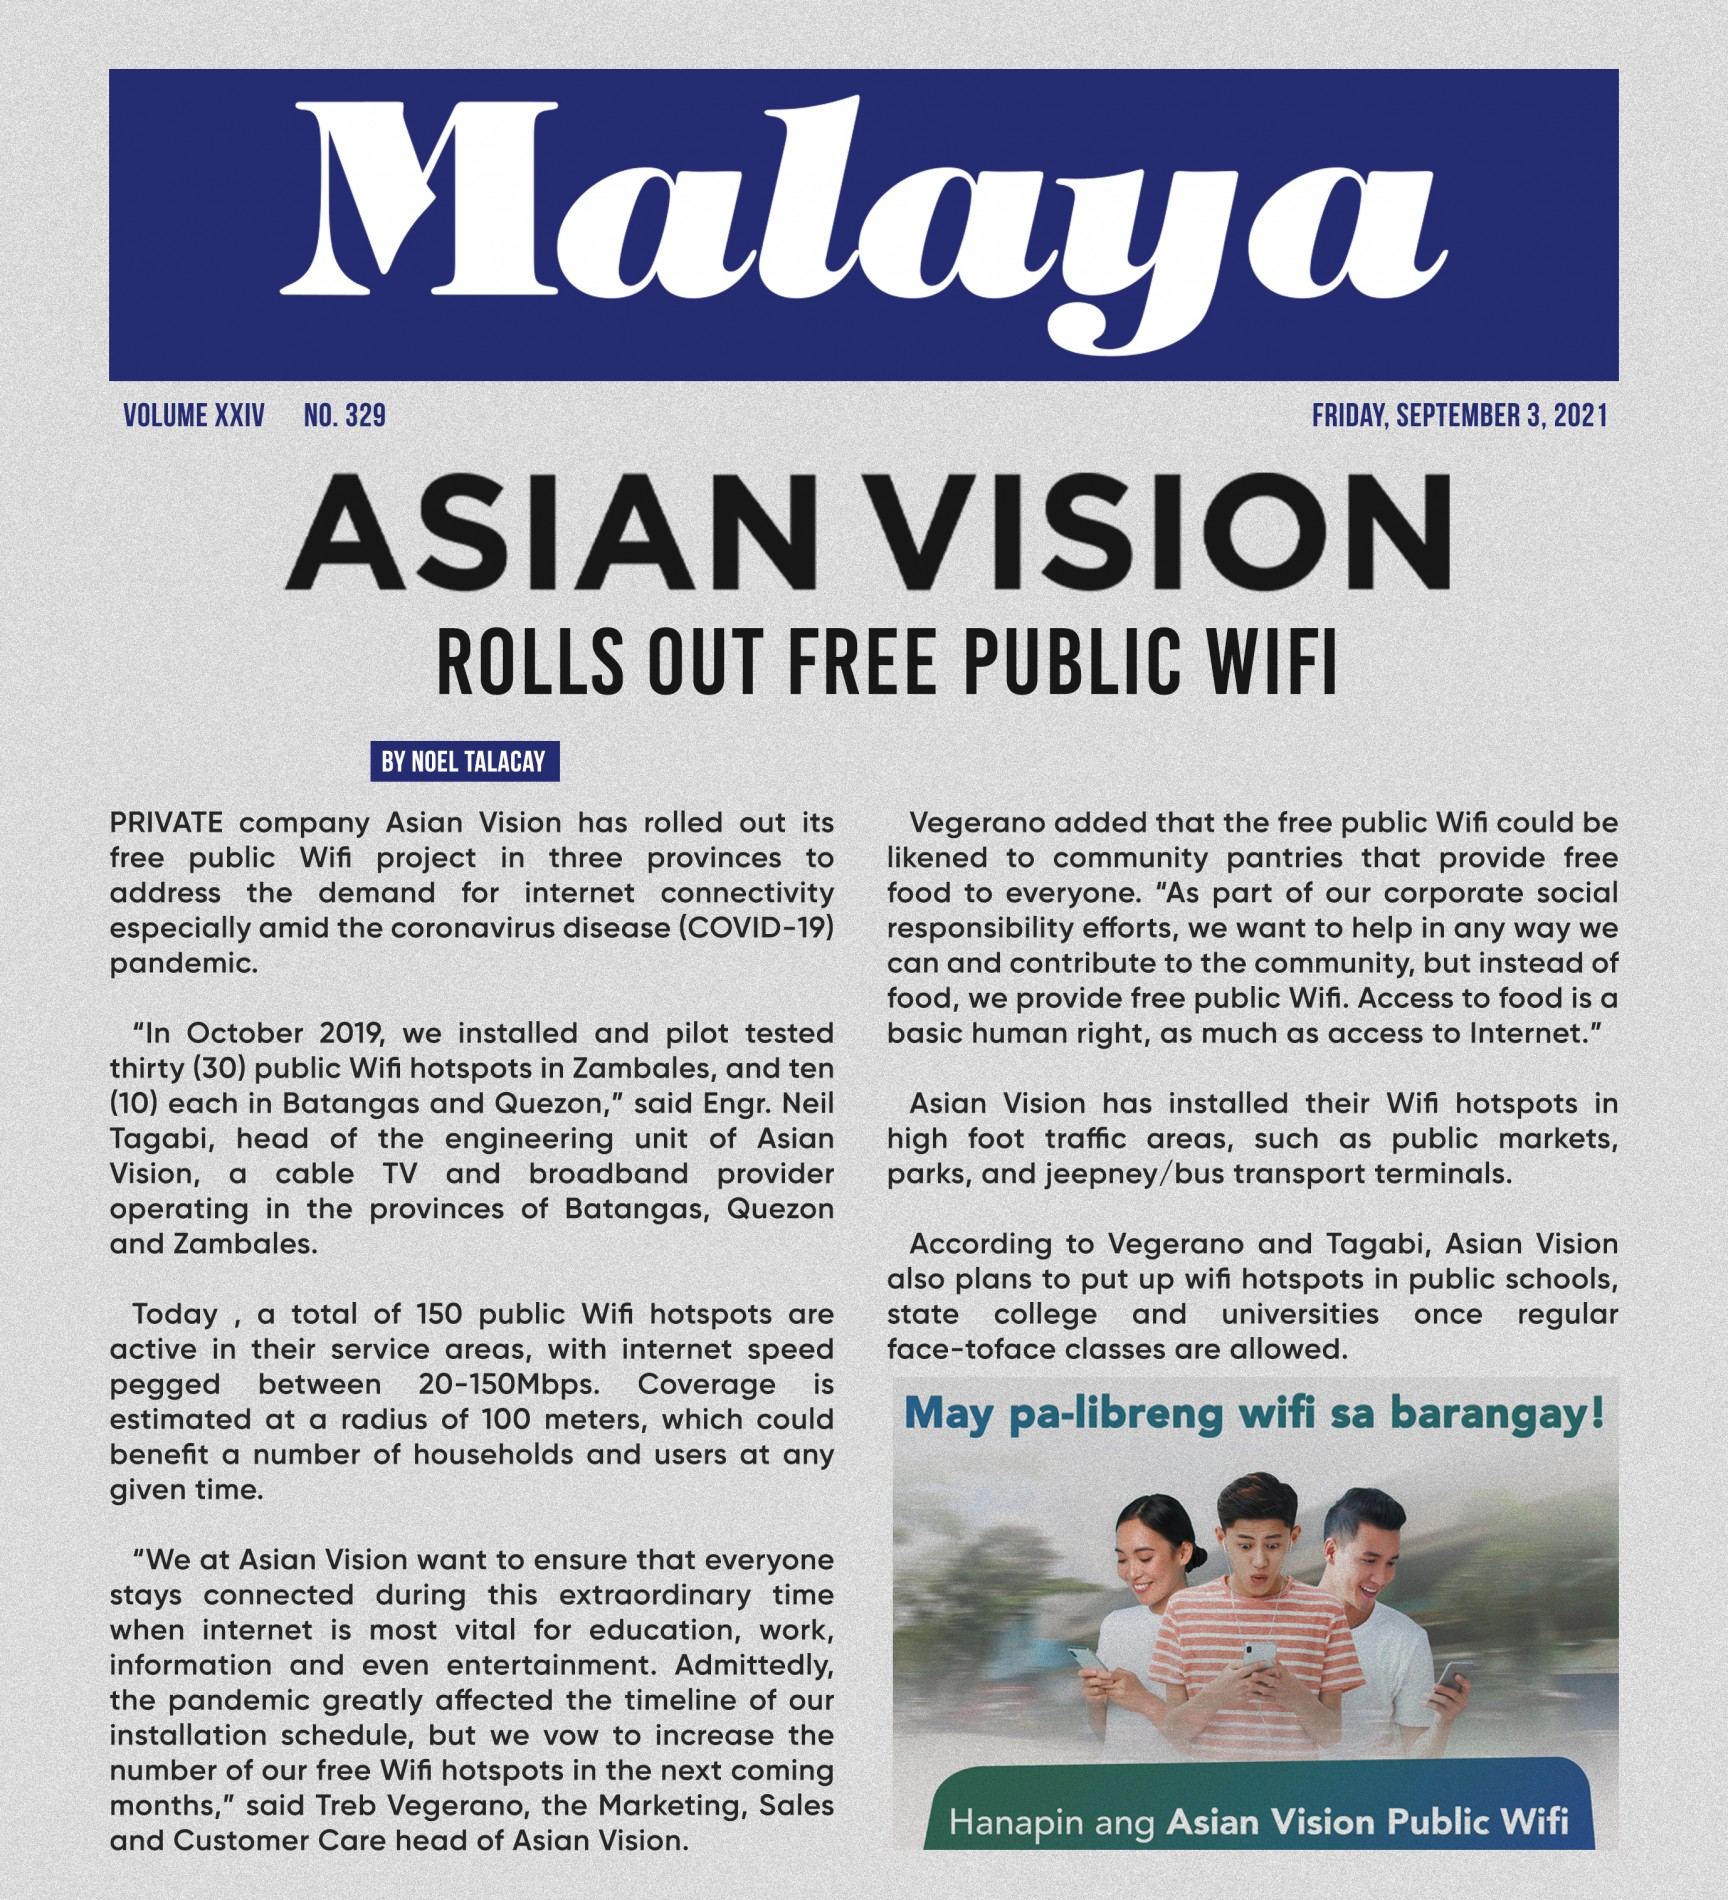 Malaya News Feature: Asian Vision Rolls Out Free Public Wifi